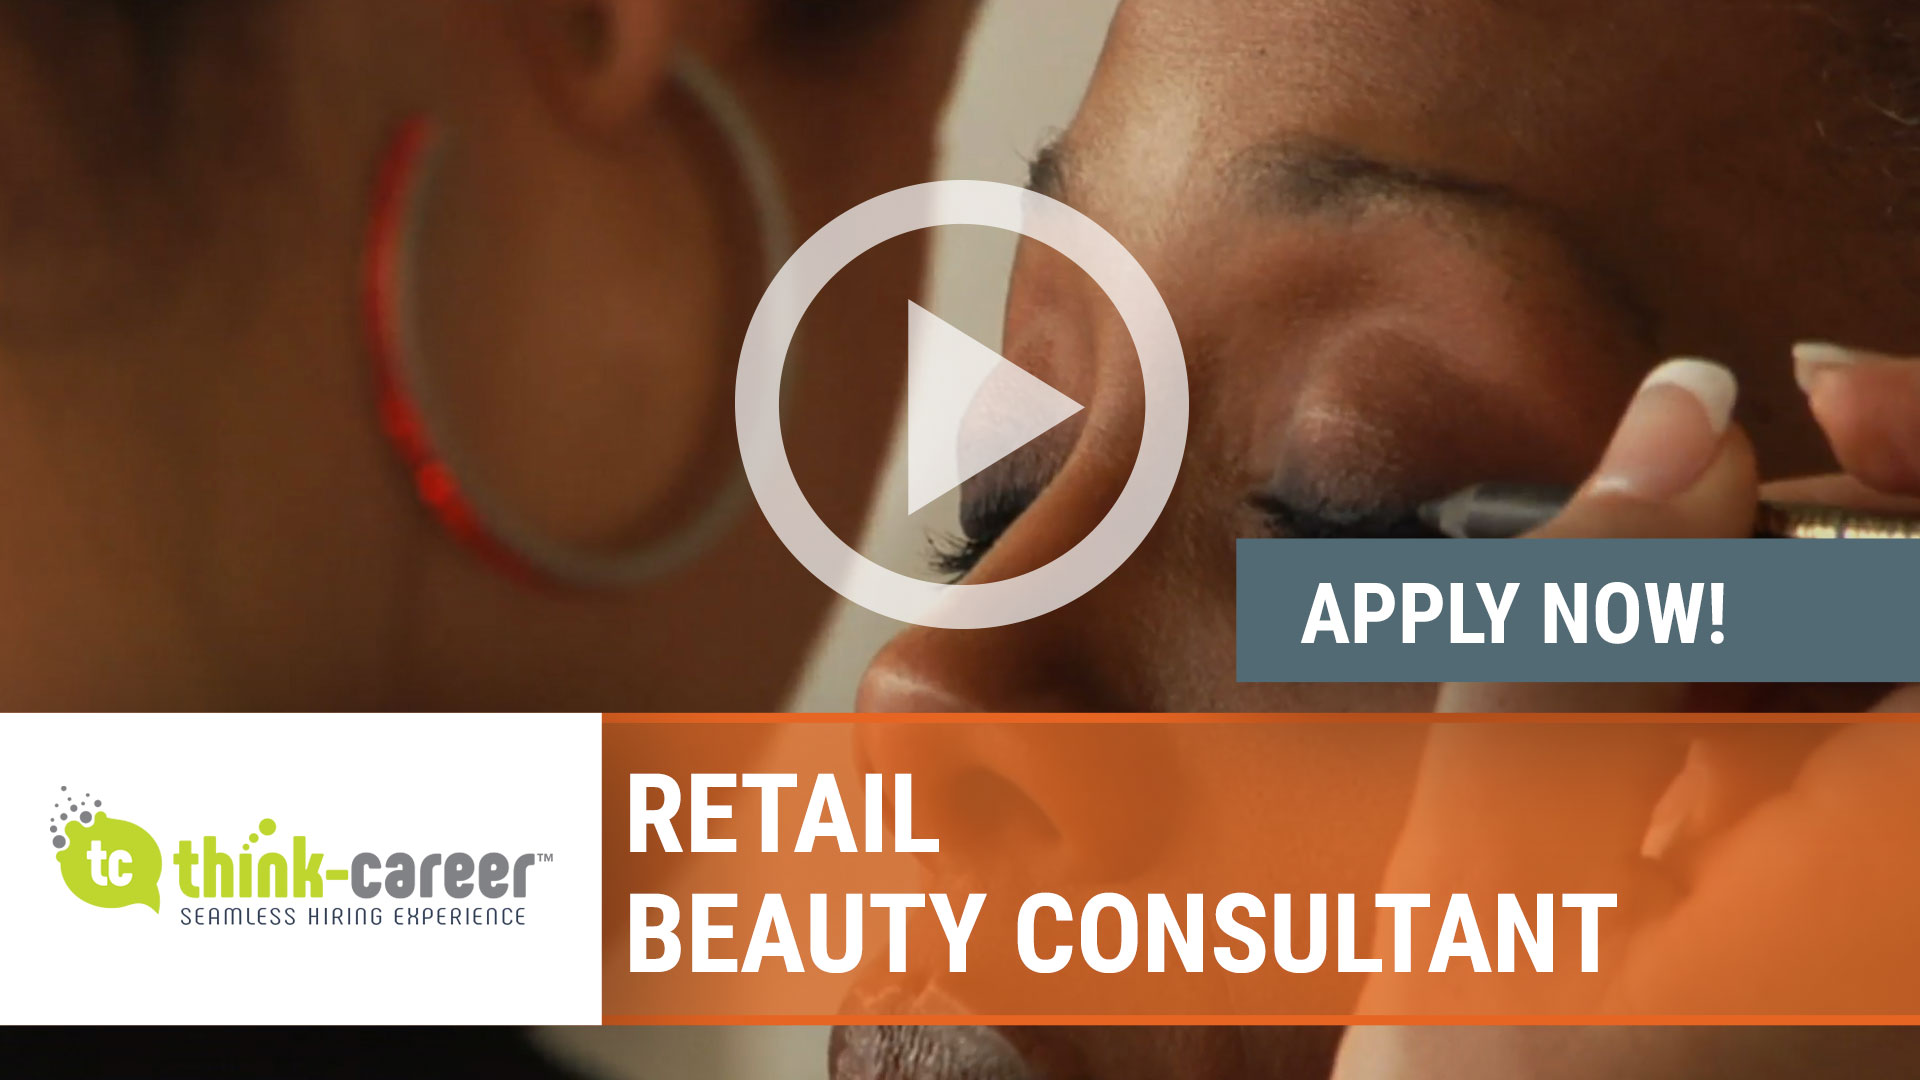 Watch our careers video for available job opening Retail Beauty Consultant in Johannesburg, East London